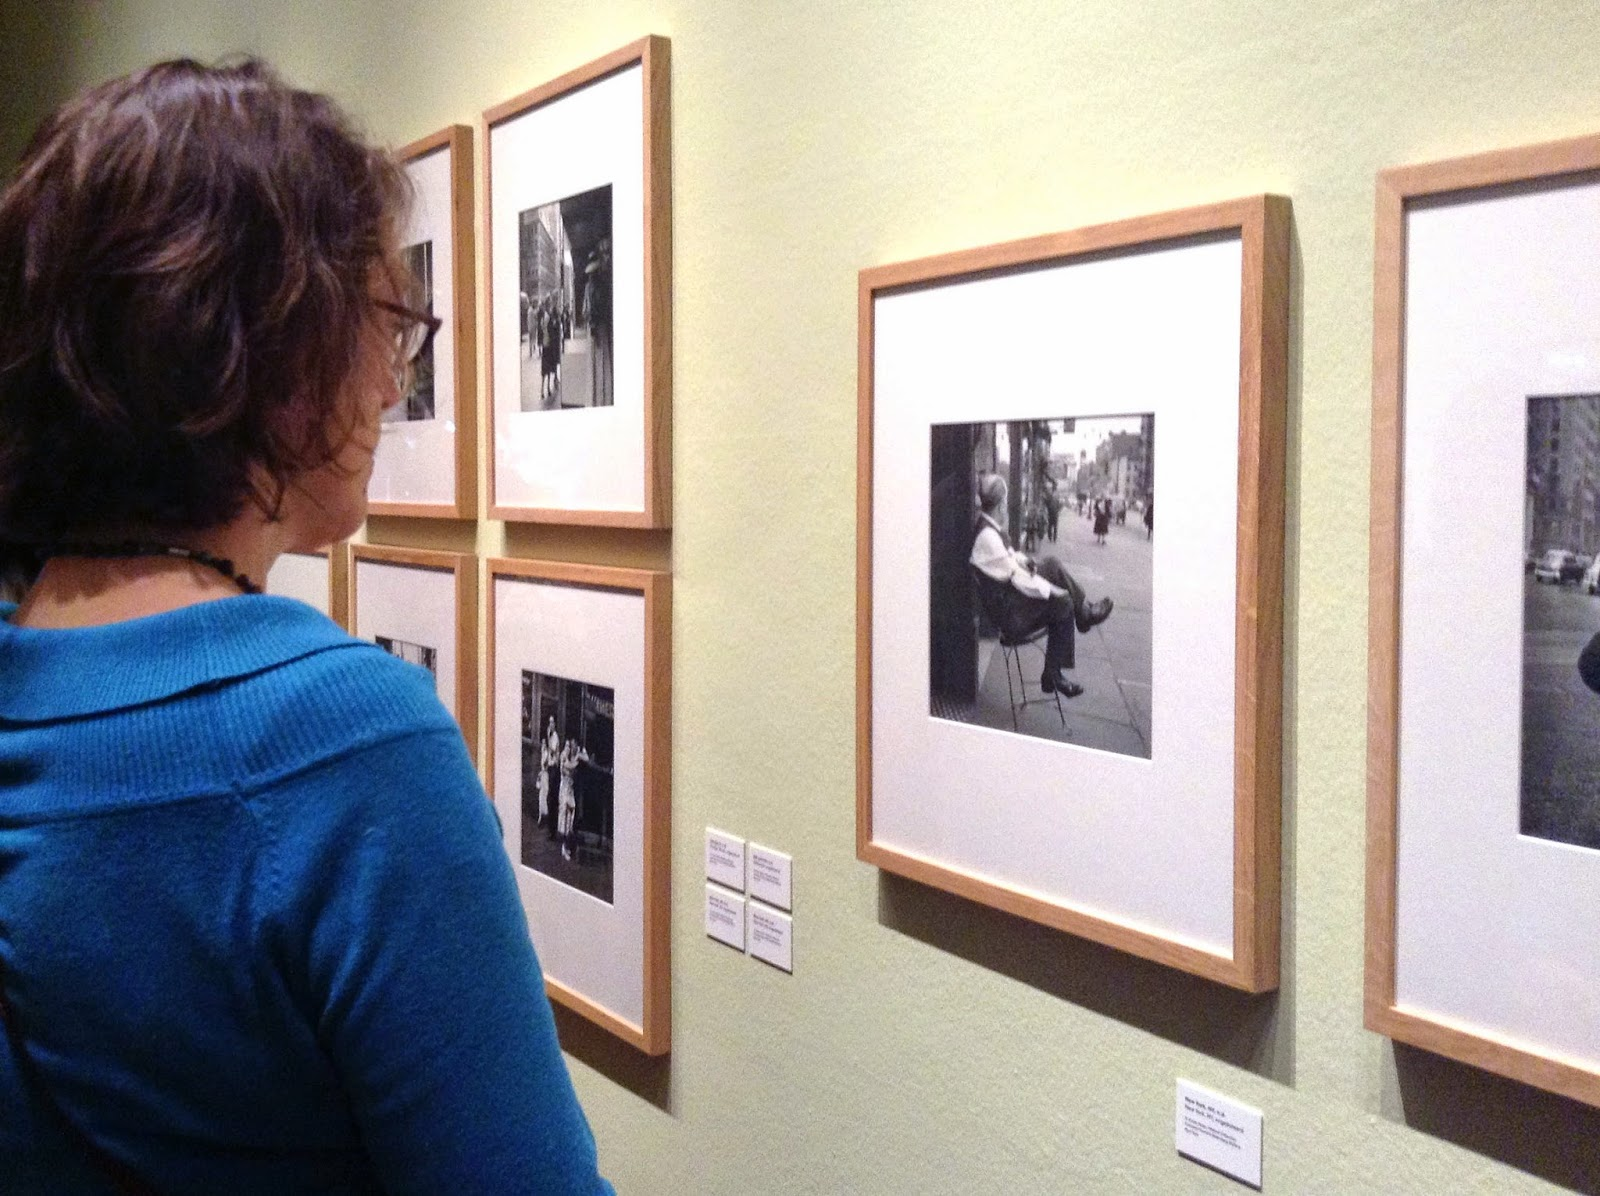 my friend C. looking at Vivian Maier's photos